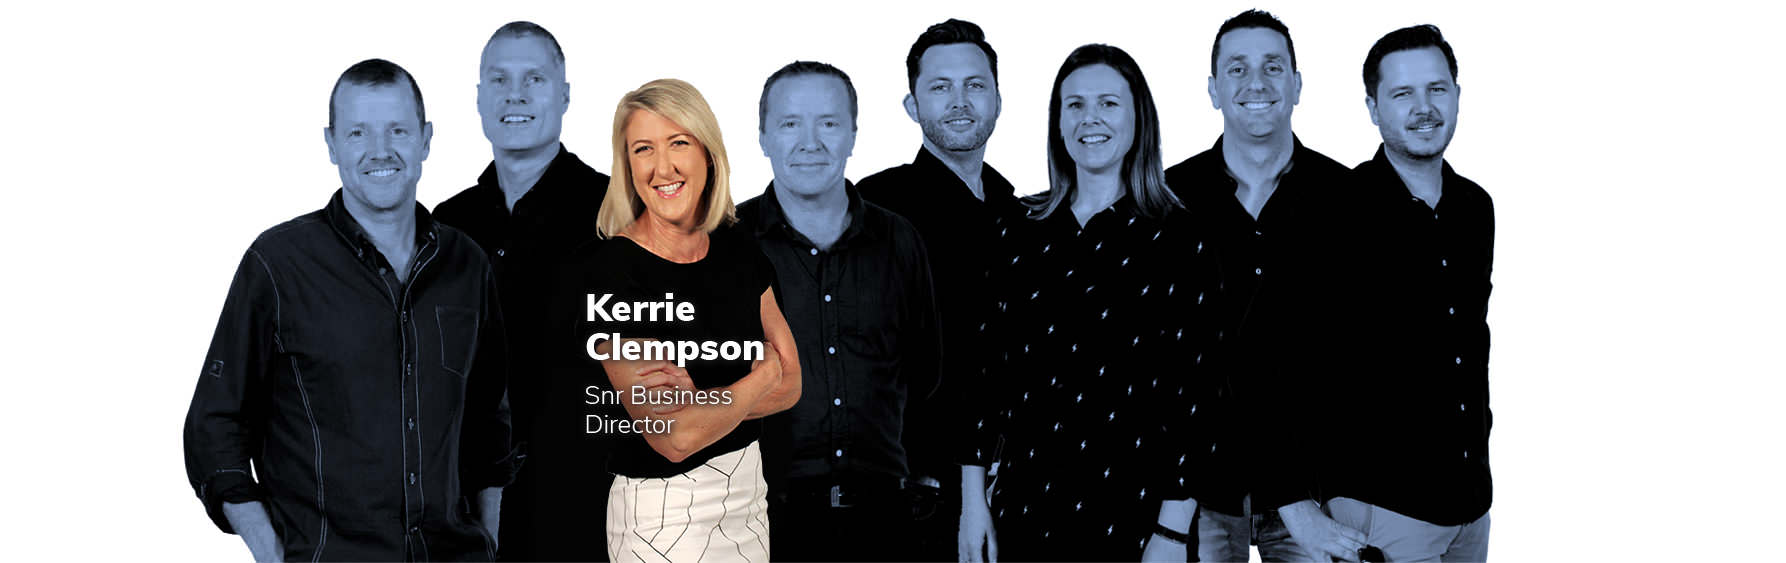 Kerrie Clempson - Senior Account Director